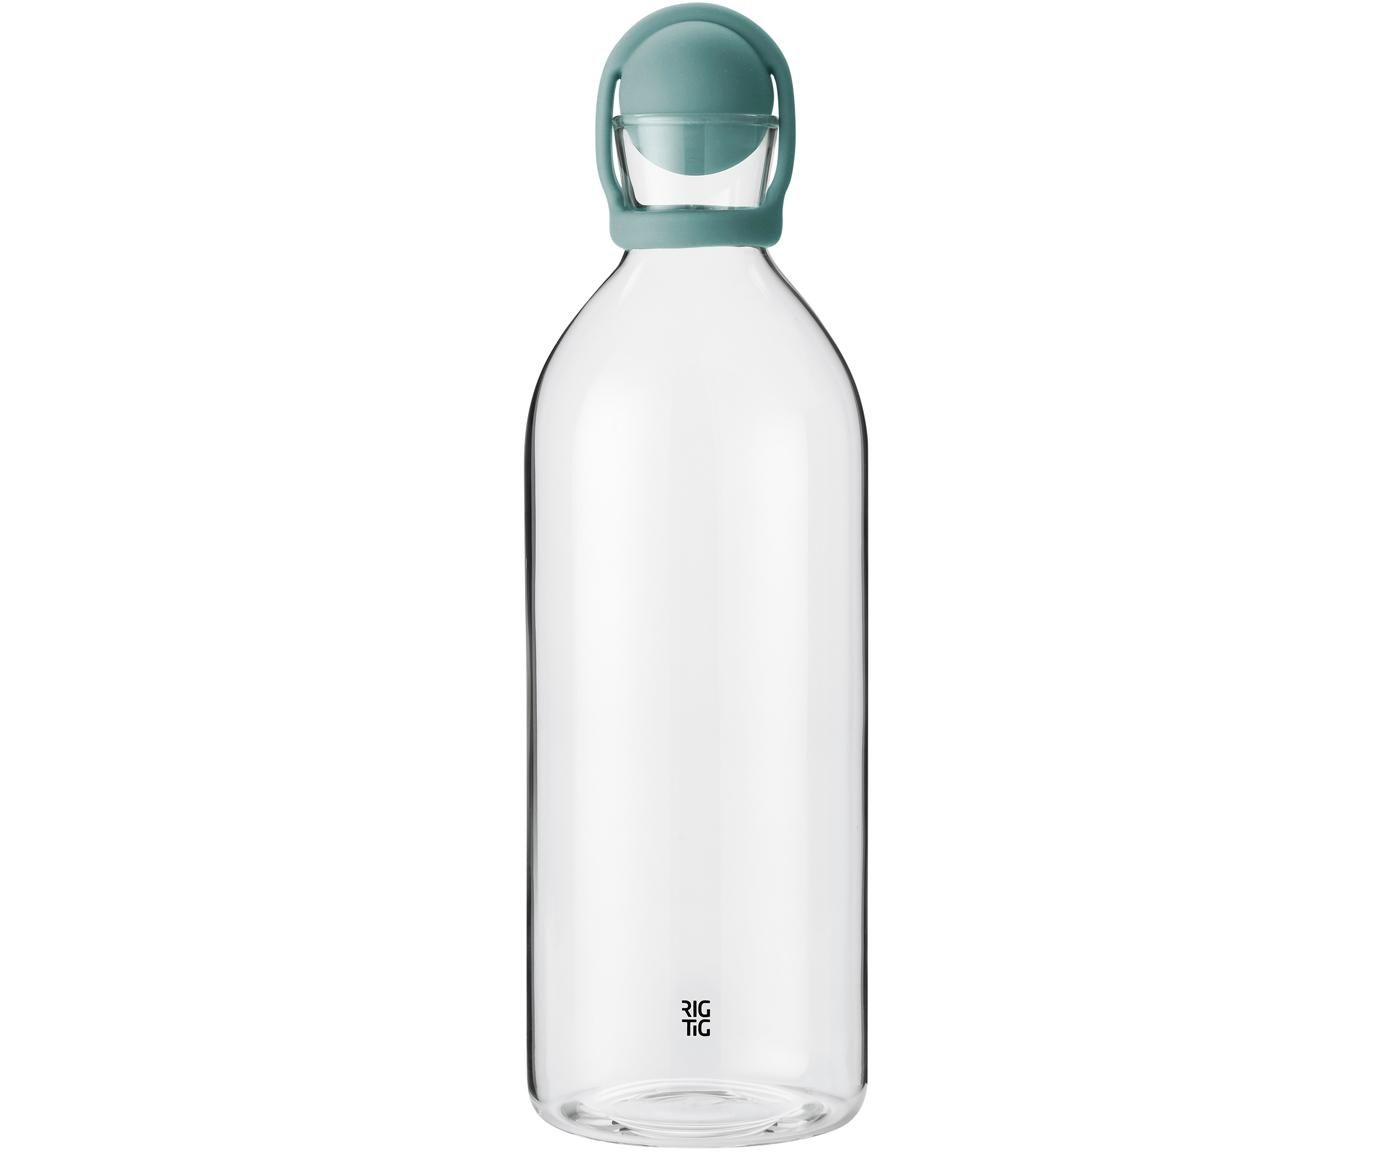 Wasserkaraffe Cool-It, Verschluss: Gummi, Türkis, Transparent, 1.5 L